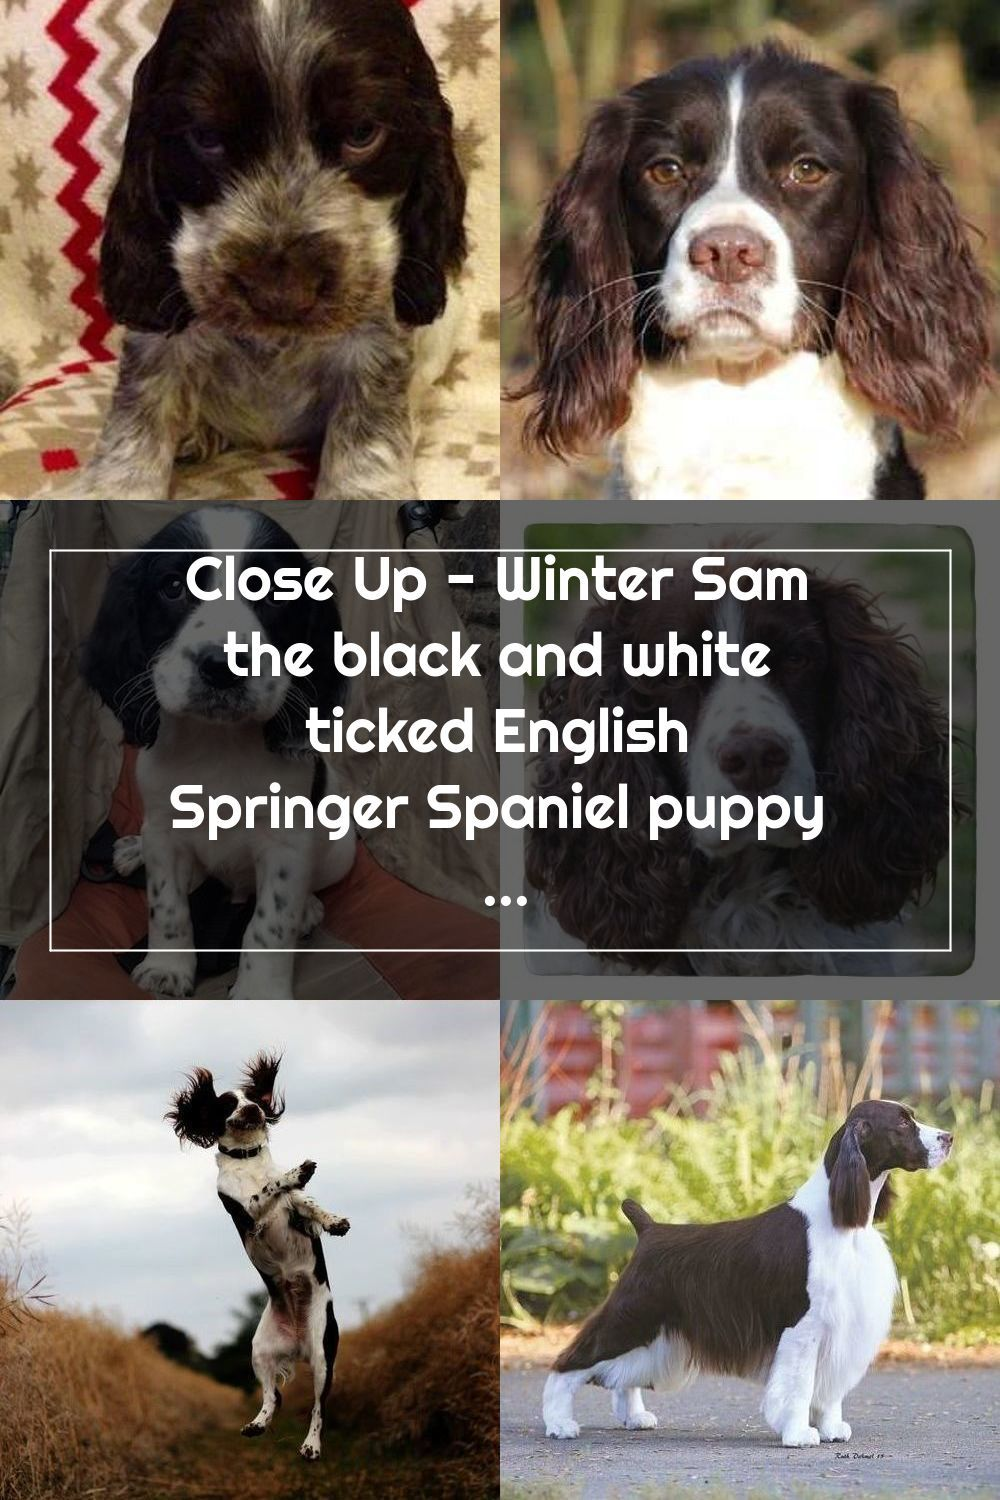 Close Up Winter Sam The Black And White Ticked English Springer Spaniel Puppy Is Sitting In A Baby In 2020 Springer Spaniel English Springer Spaniel English Springer